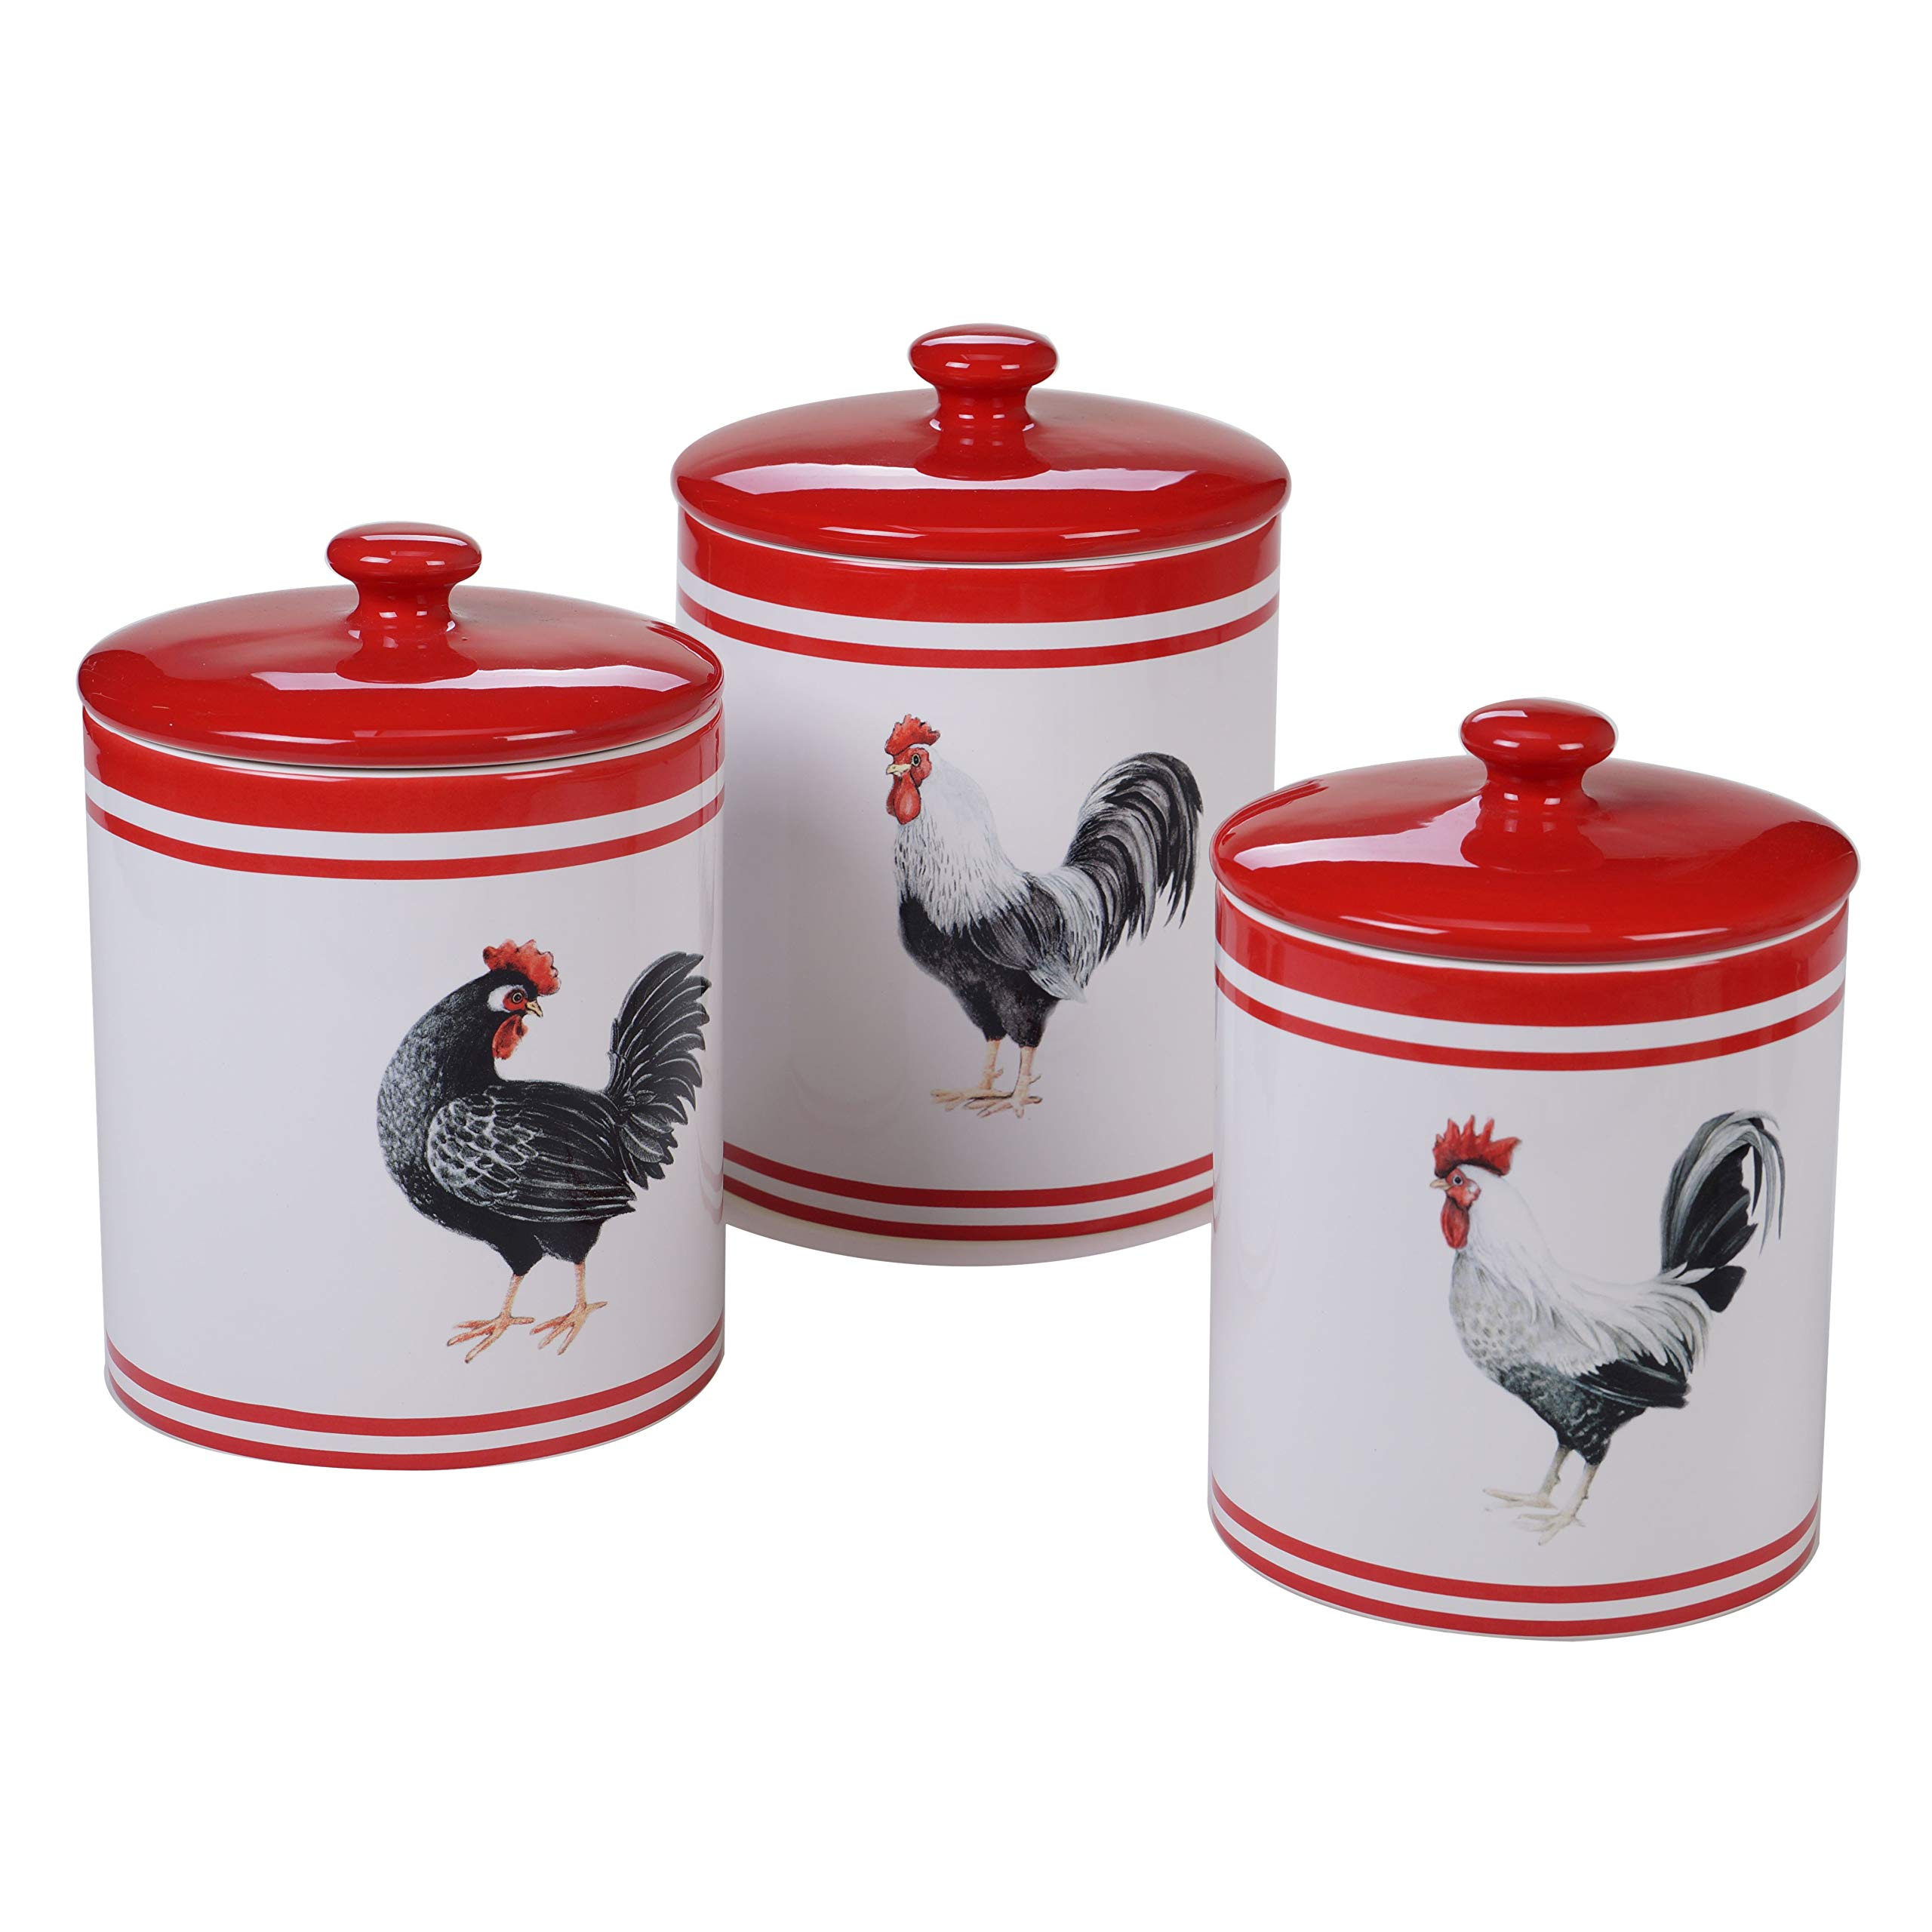 Certified International 26785 Homestead Rooster 3 pc. Canister Set Servware, Serving Acessories Multicolred